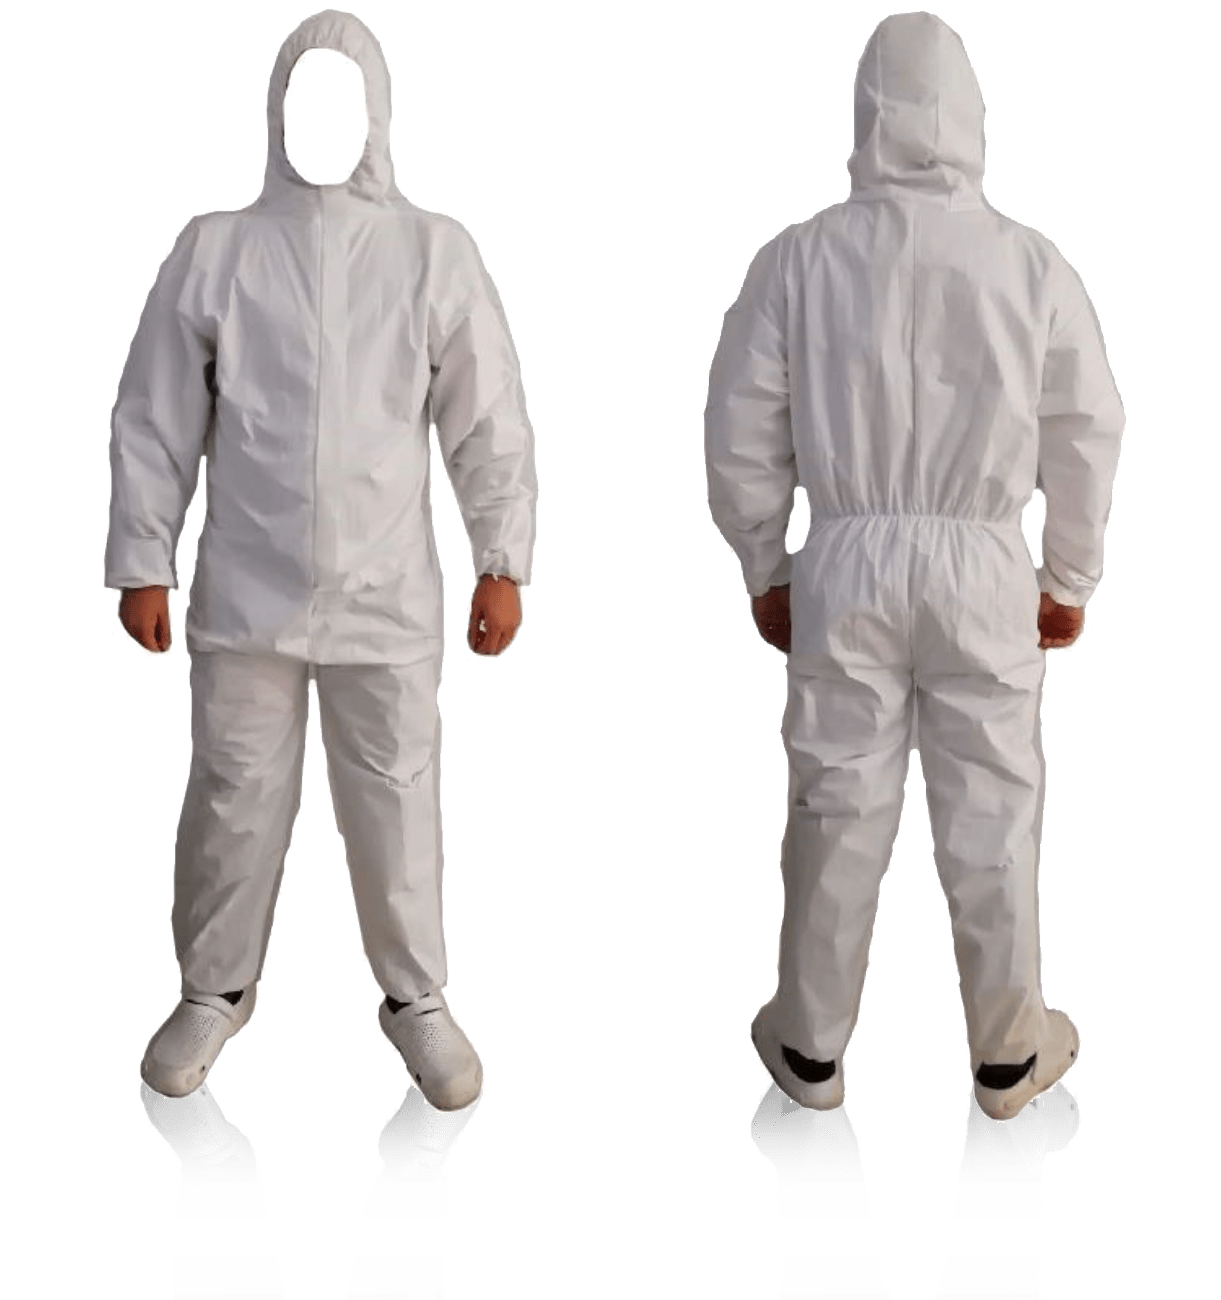 Coveralls Type 5 6 For Virus Protection In The Workplace Maxam